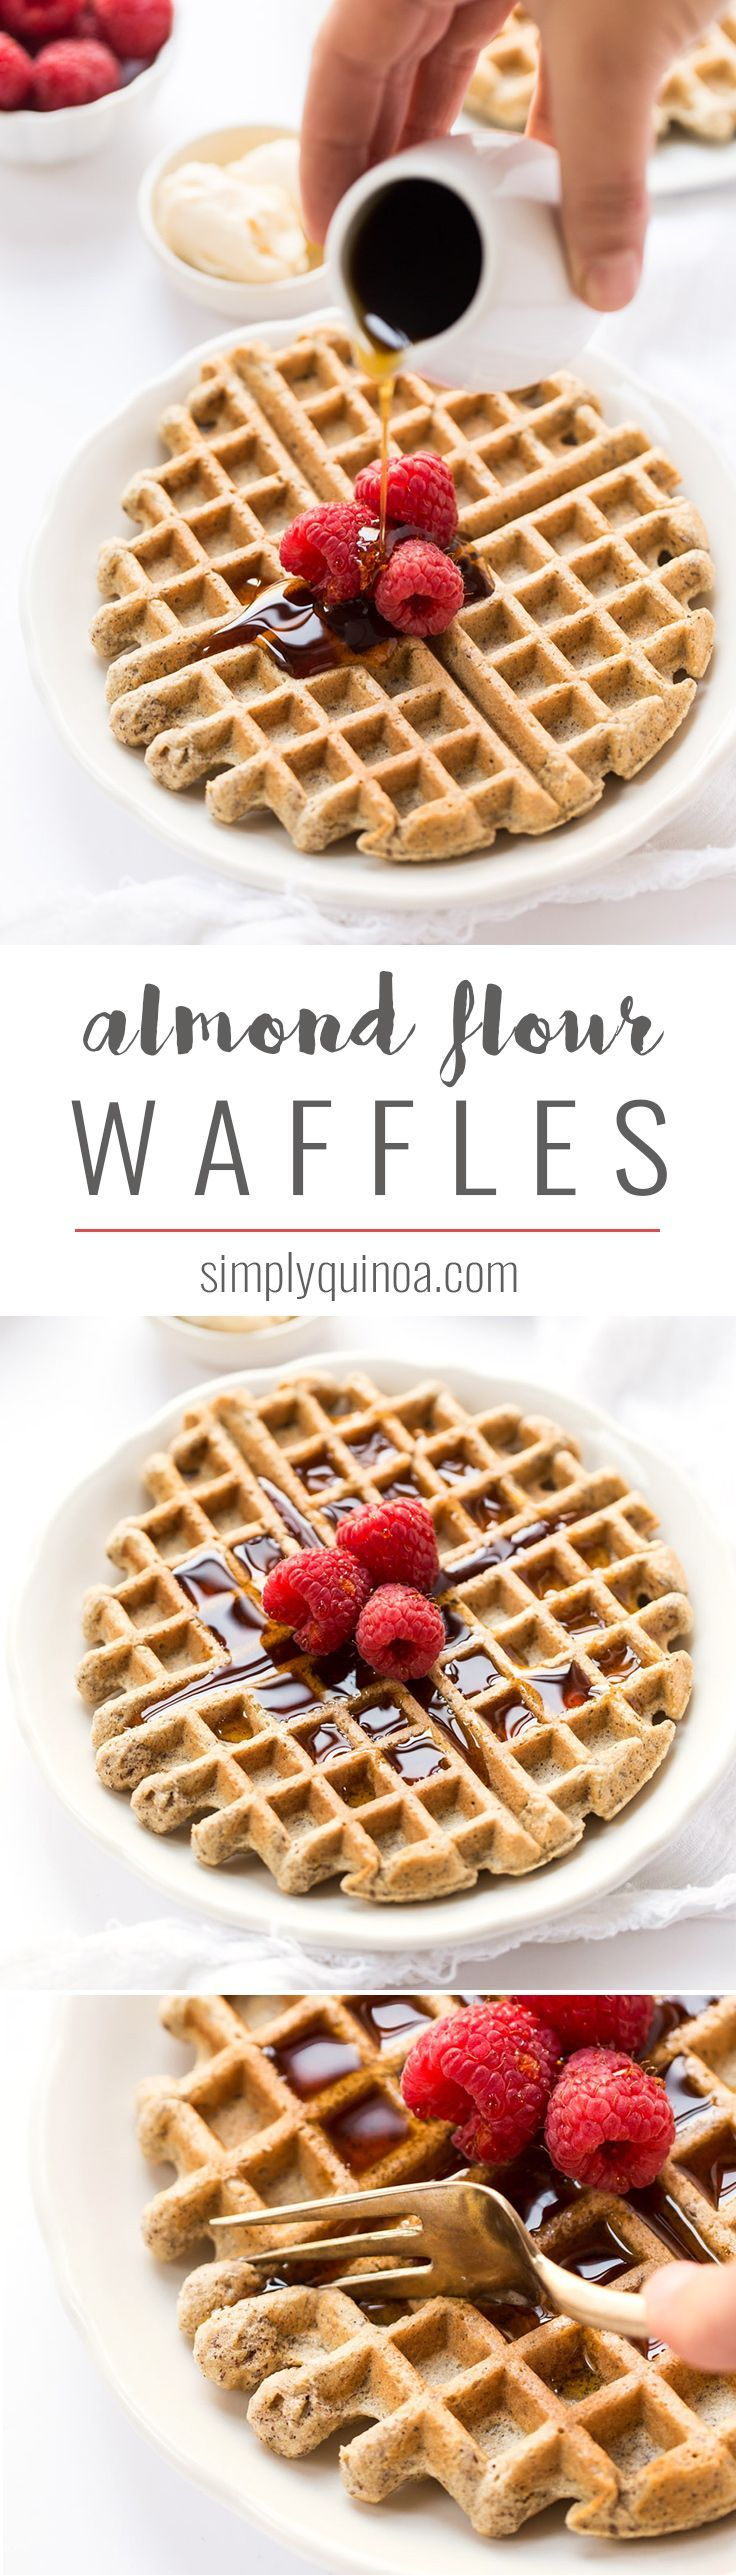 These ALMOND FLOUR WAFFLES are what breakfast dreams are made of! With a blend of wholesome, high-protein flours they're hearty and fluffy at the same time!